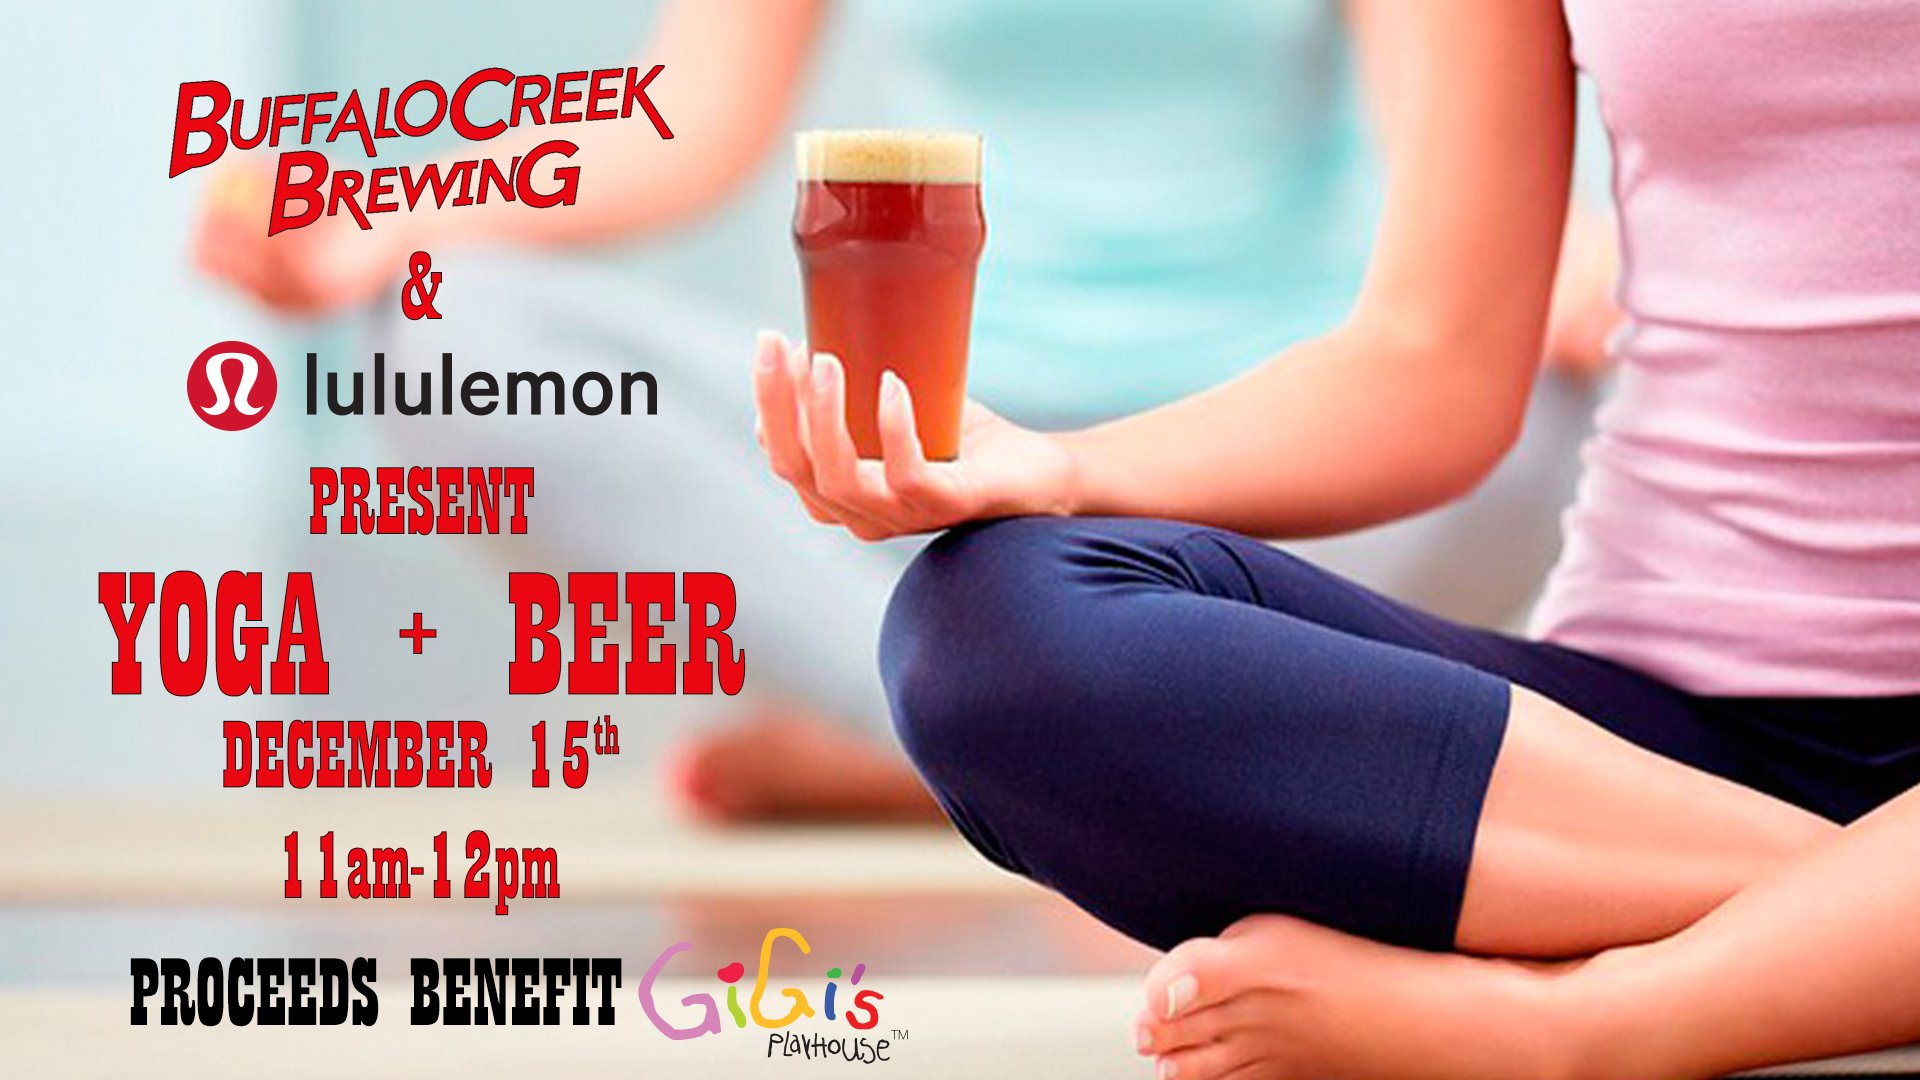 Yoga & Beer at Buffalo Creek Brewing